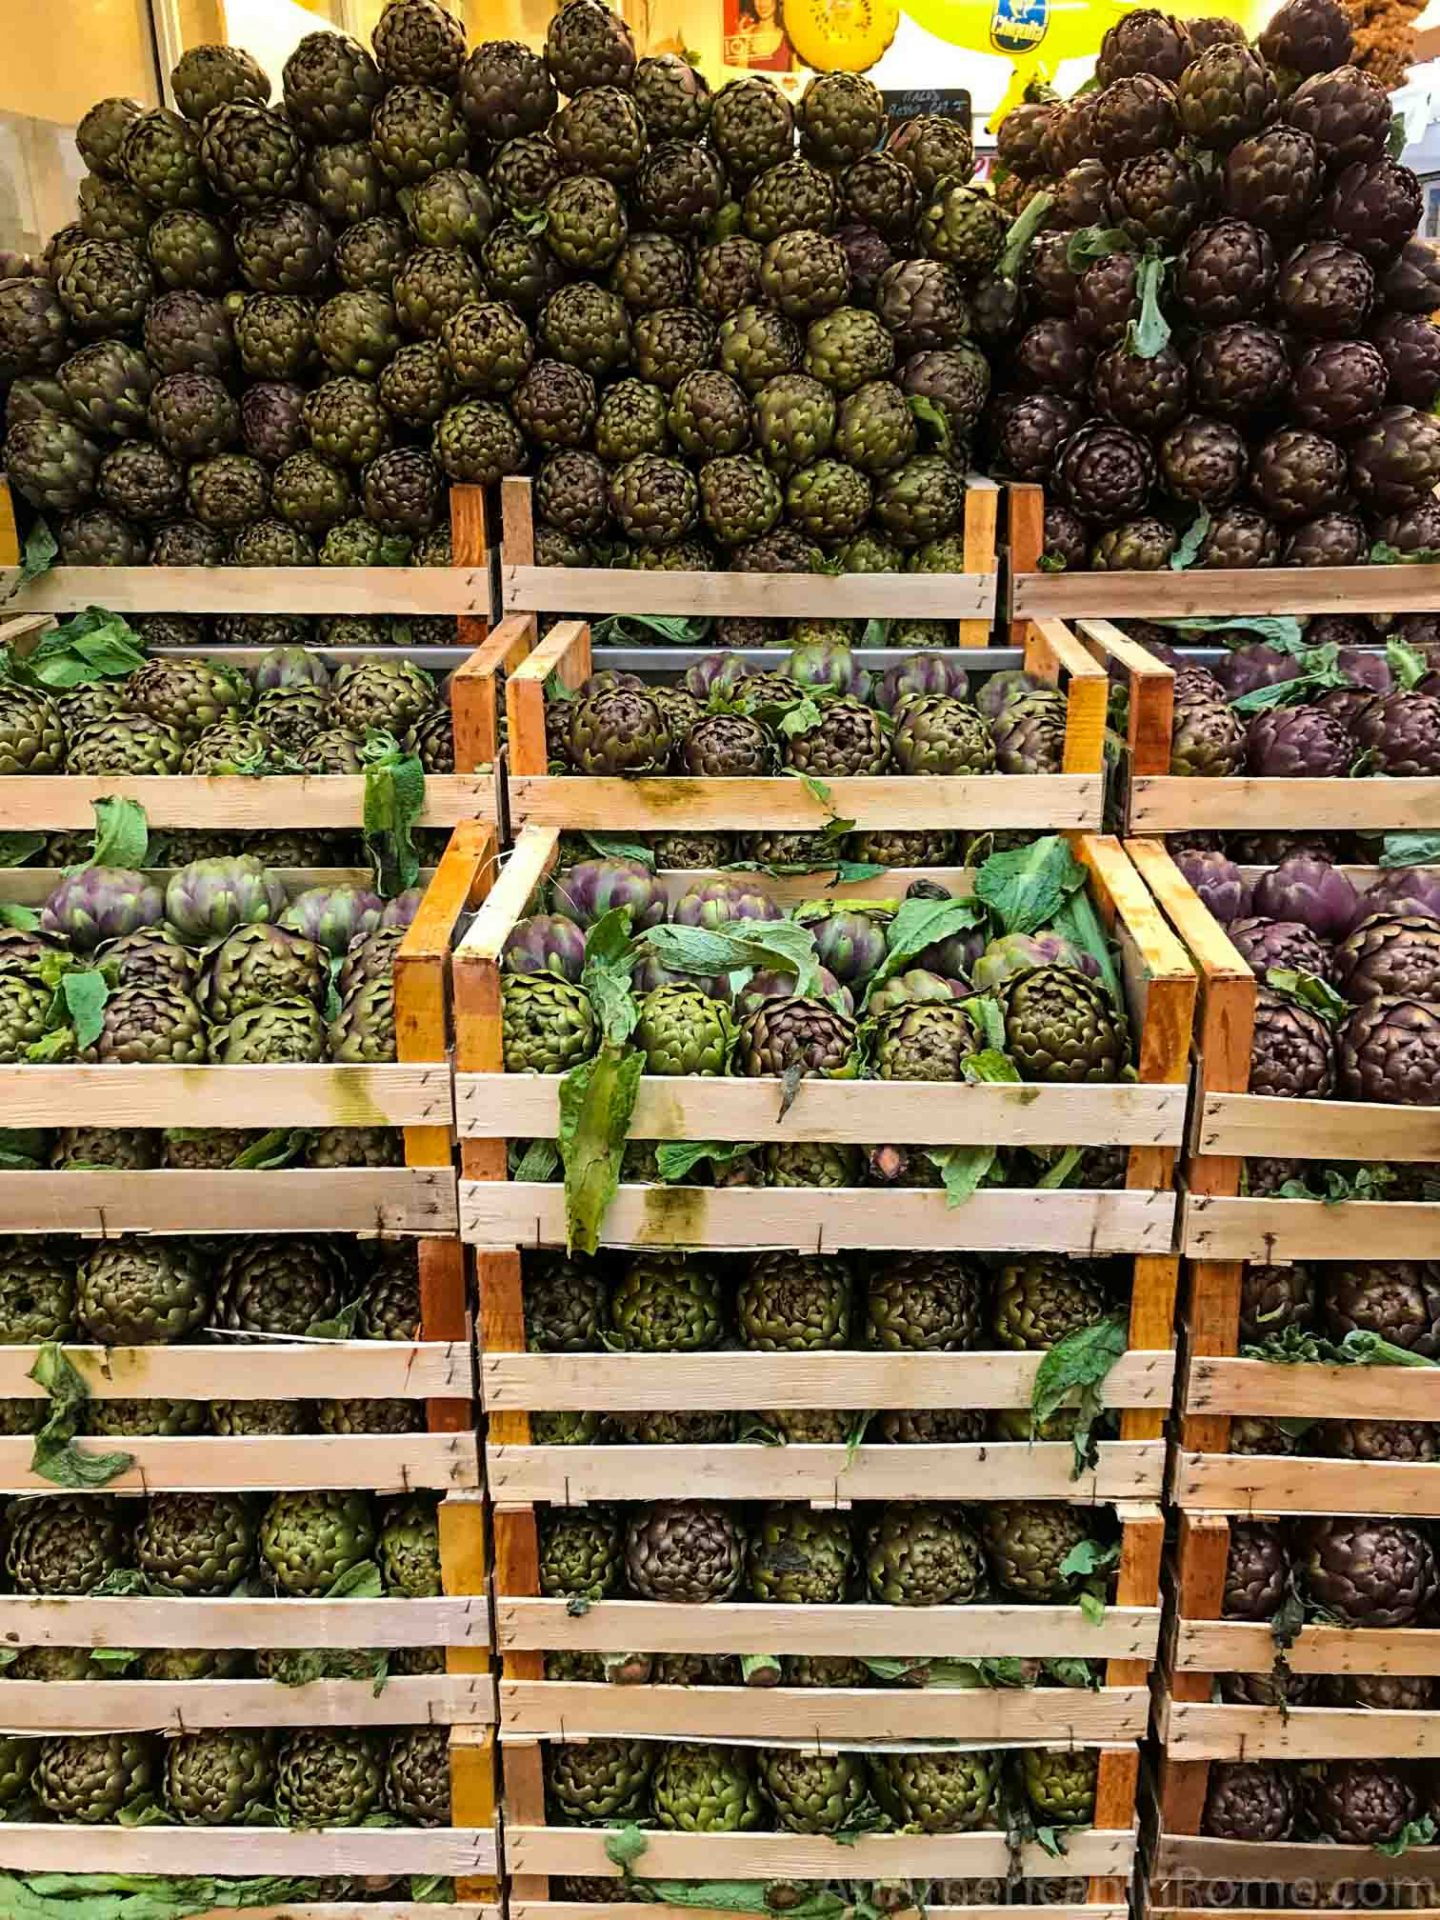 stacked crates and rows of artichokes in Rome